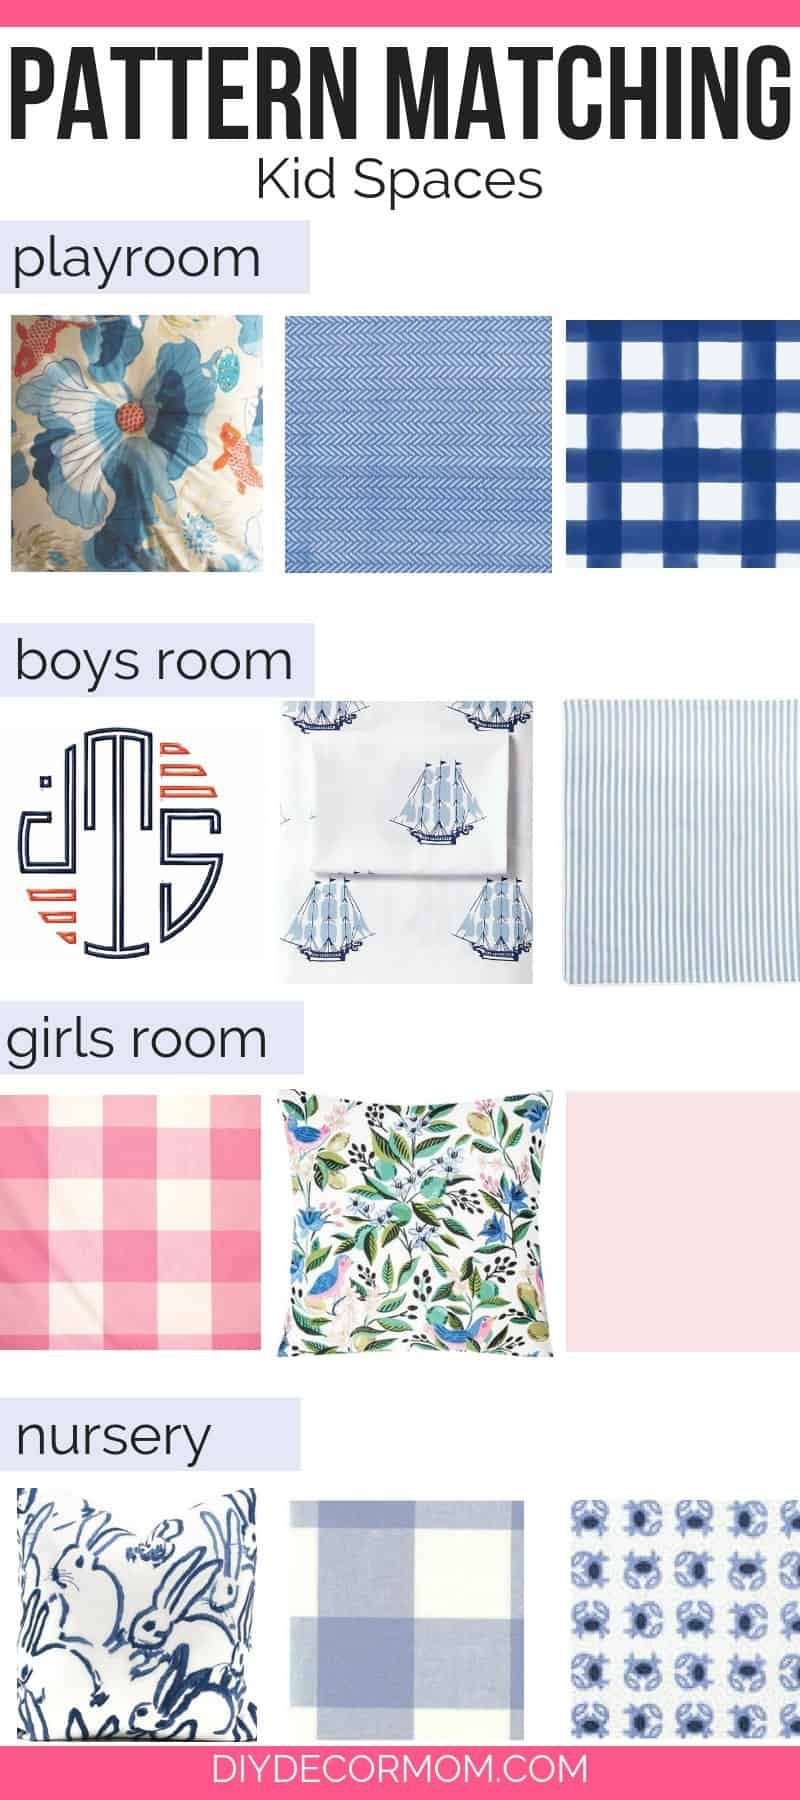 how do i pick out fabric patterns for my house- guide to mixing fabric patterns